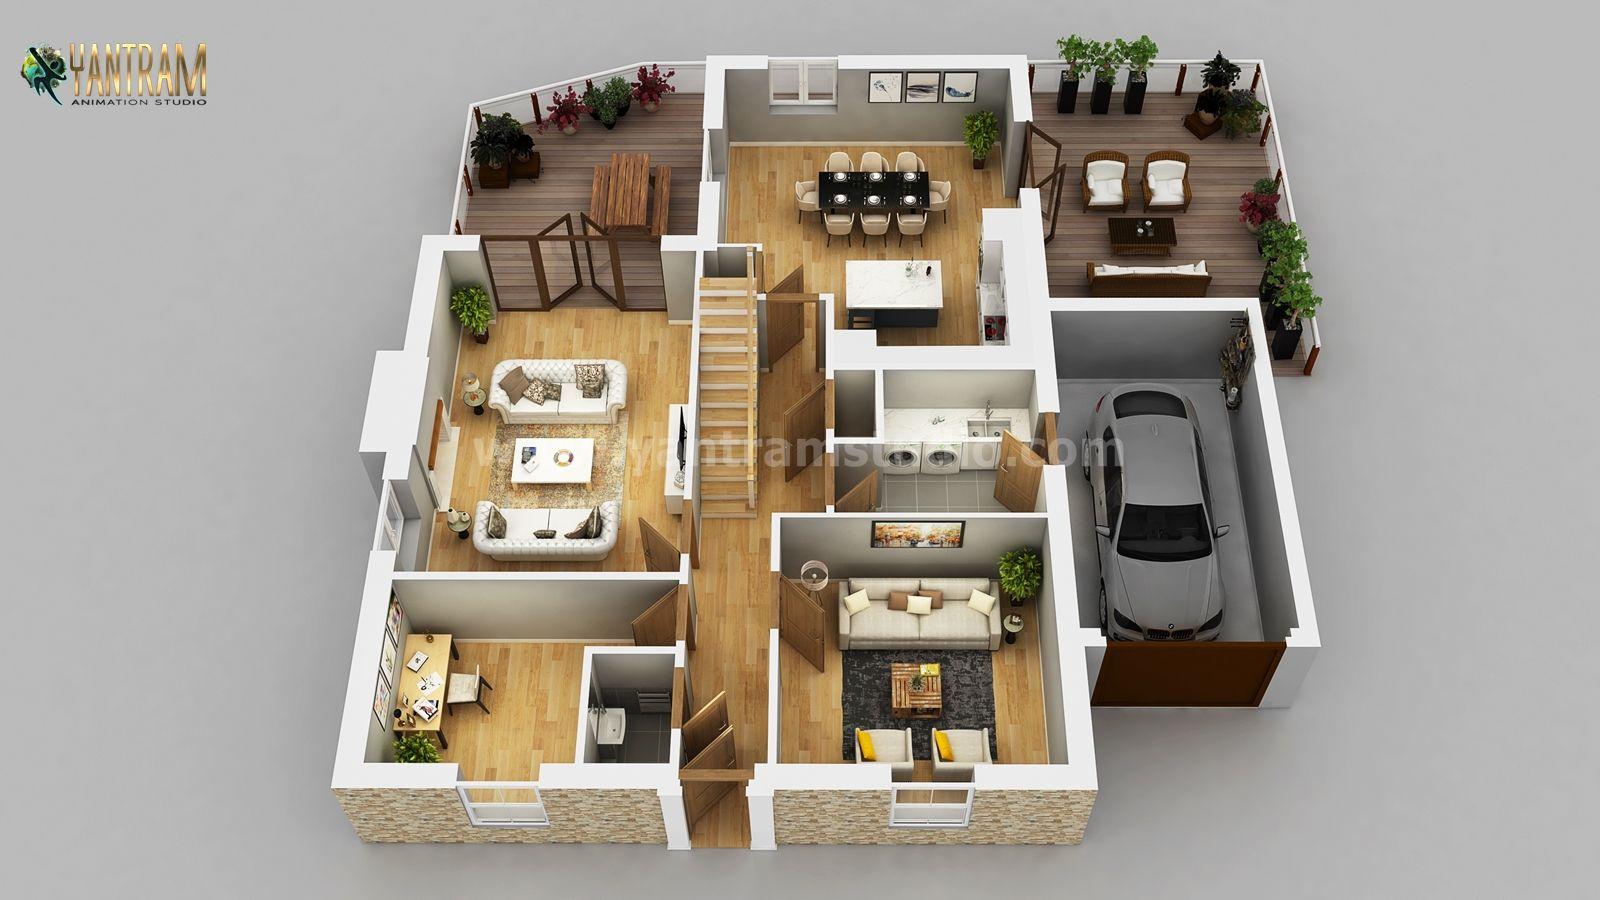 Residential Apartment 3d Floor Plan Design By Architectural Rendering Services Wasilla Alaska Architectural Design Studio Floor Plan Design Floor Plans